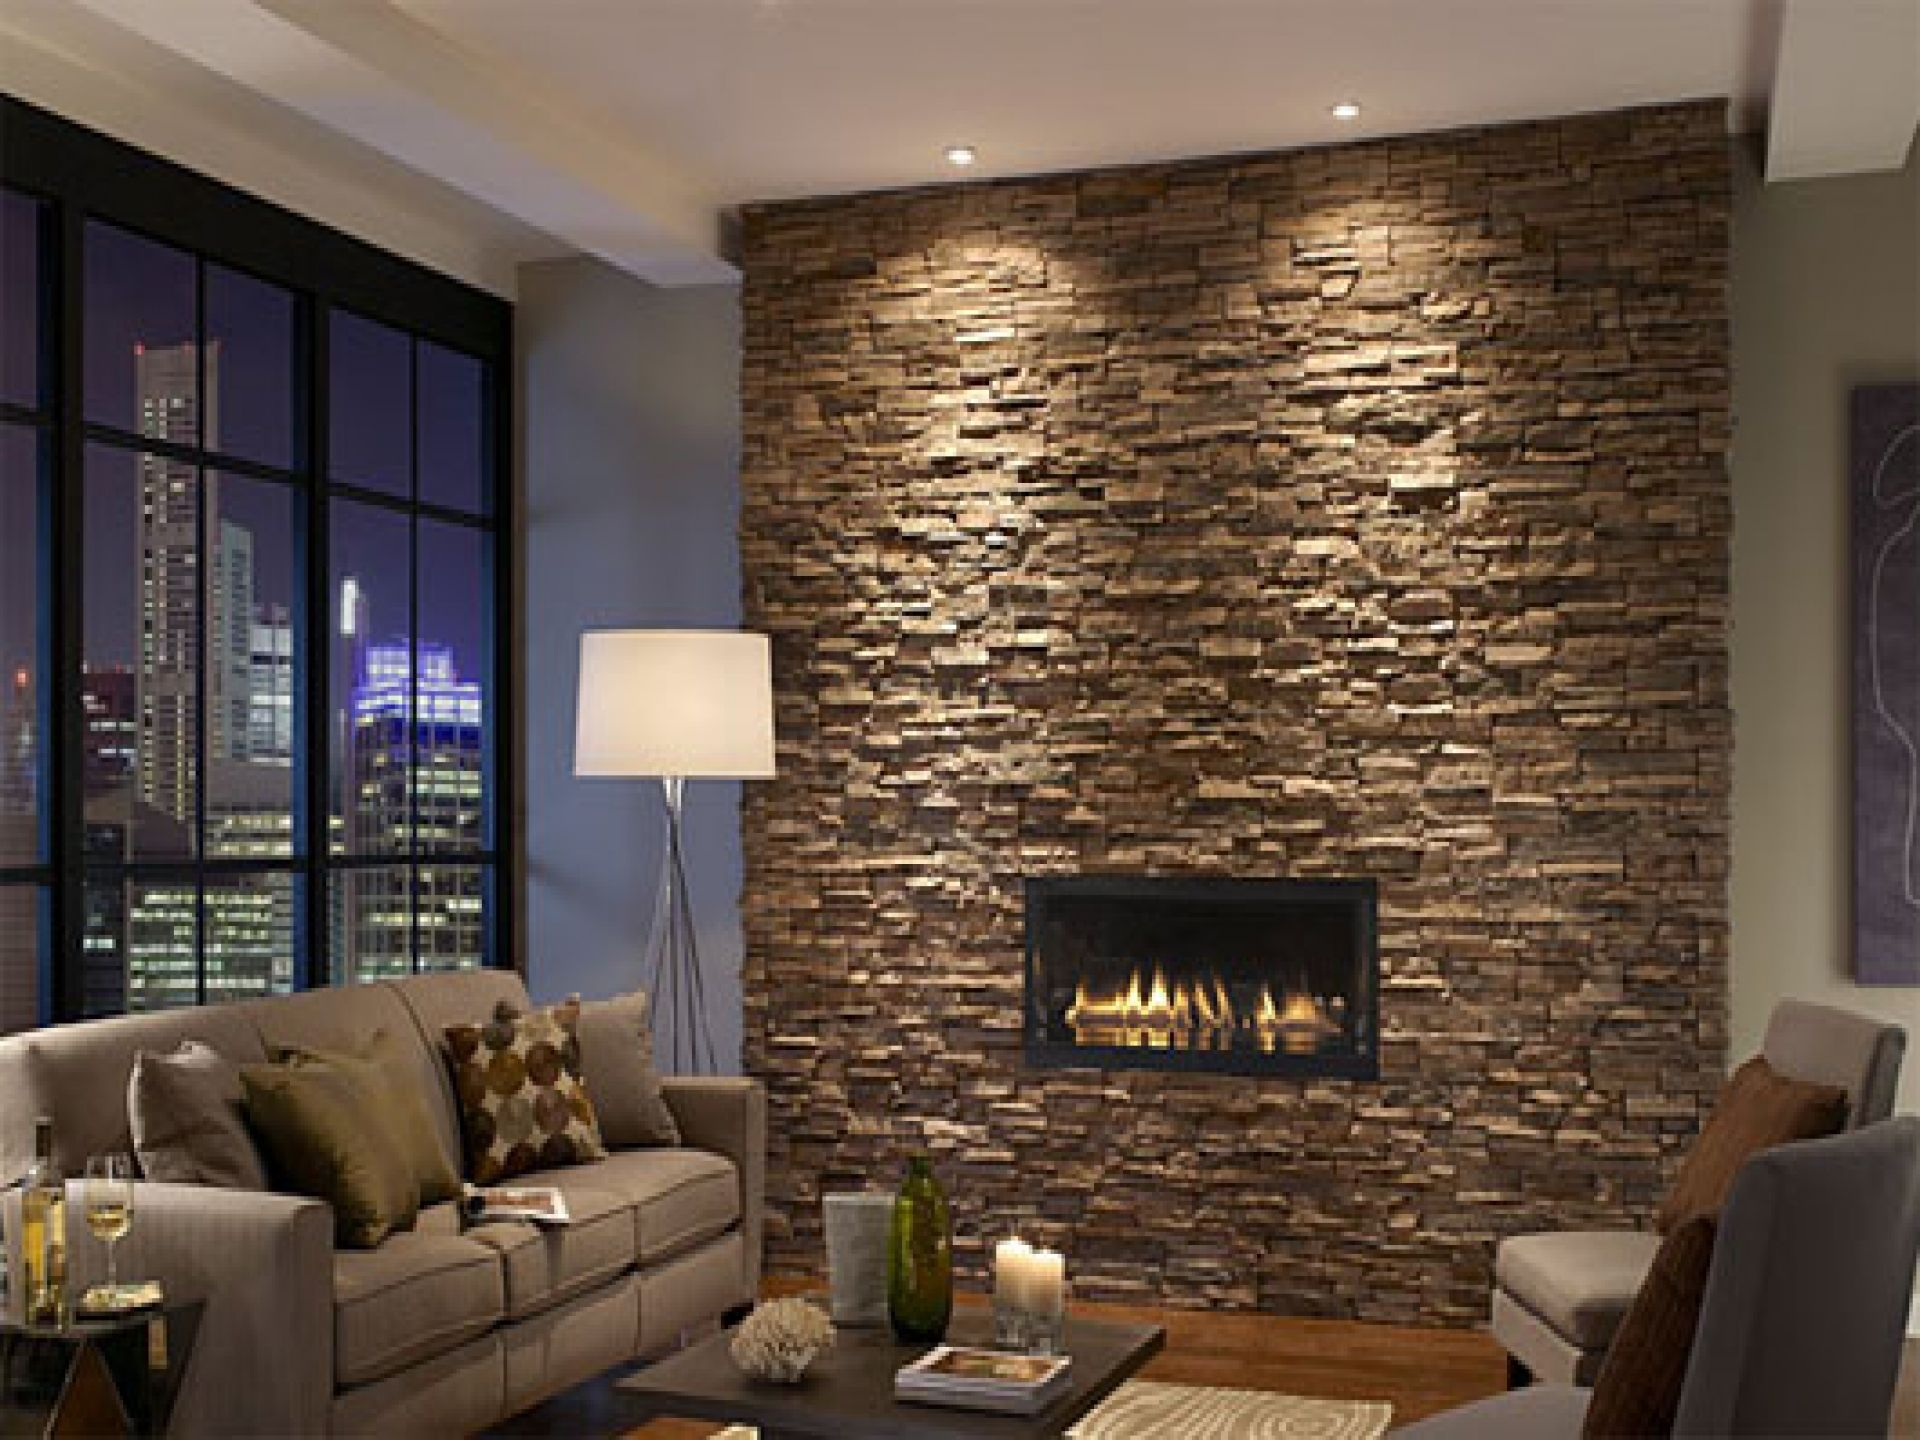 Stone Wall Design interior stone wall designs | home design ideas